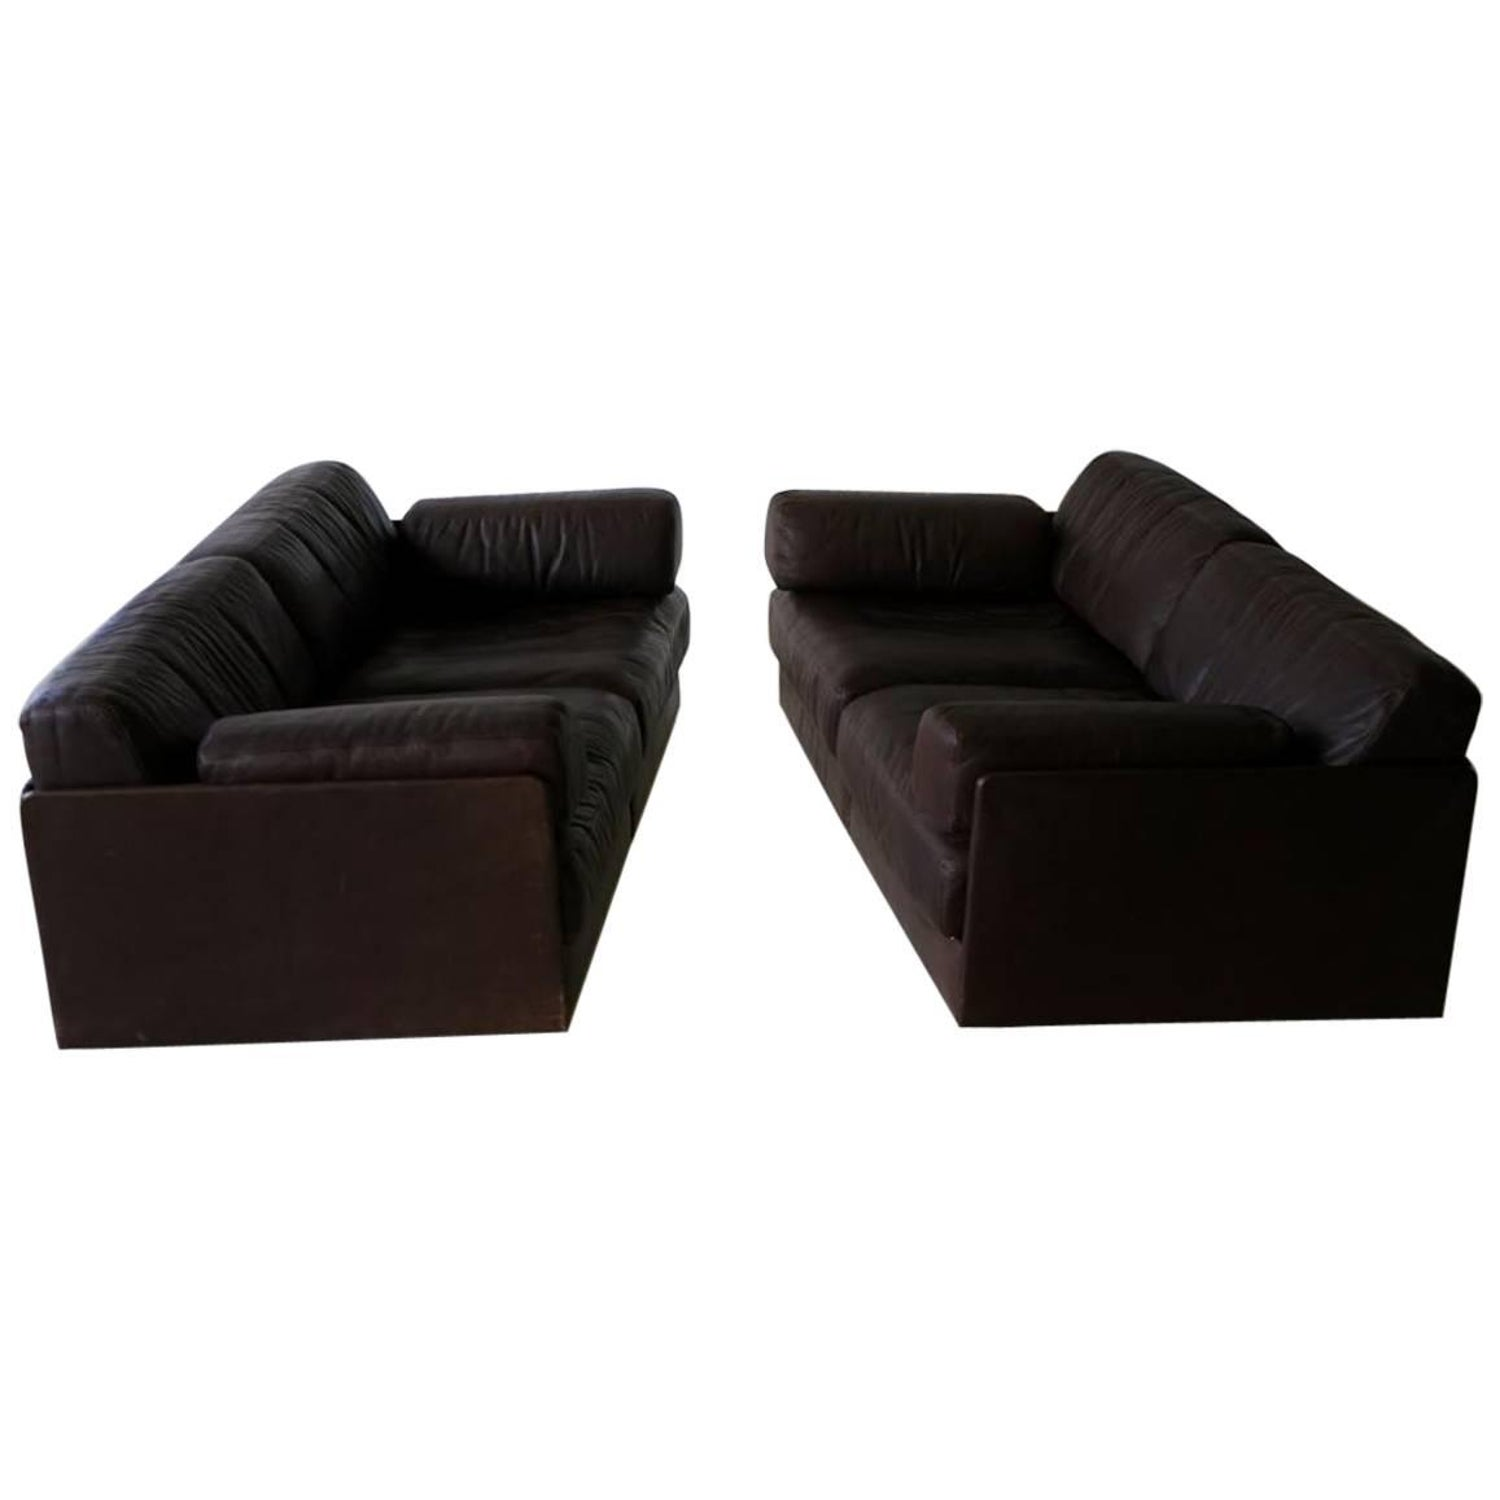 Lounge ecksofa  De Sede Sofas - 176 For Sale at 1stdibs